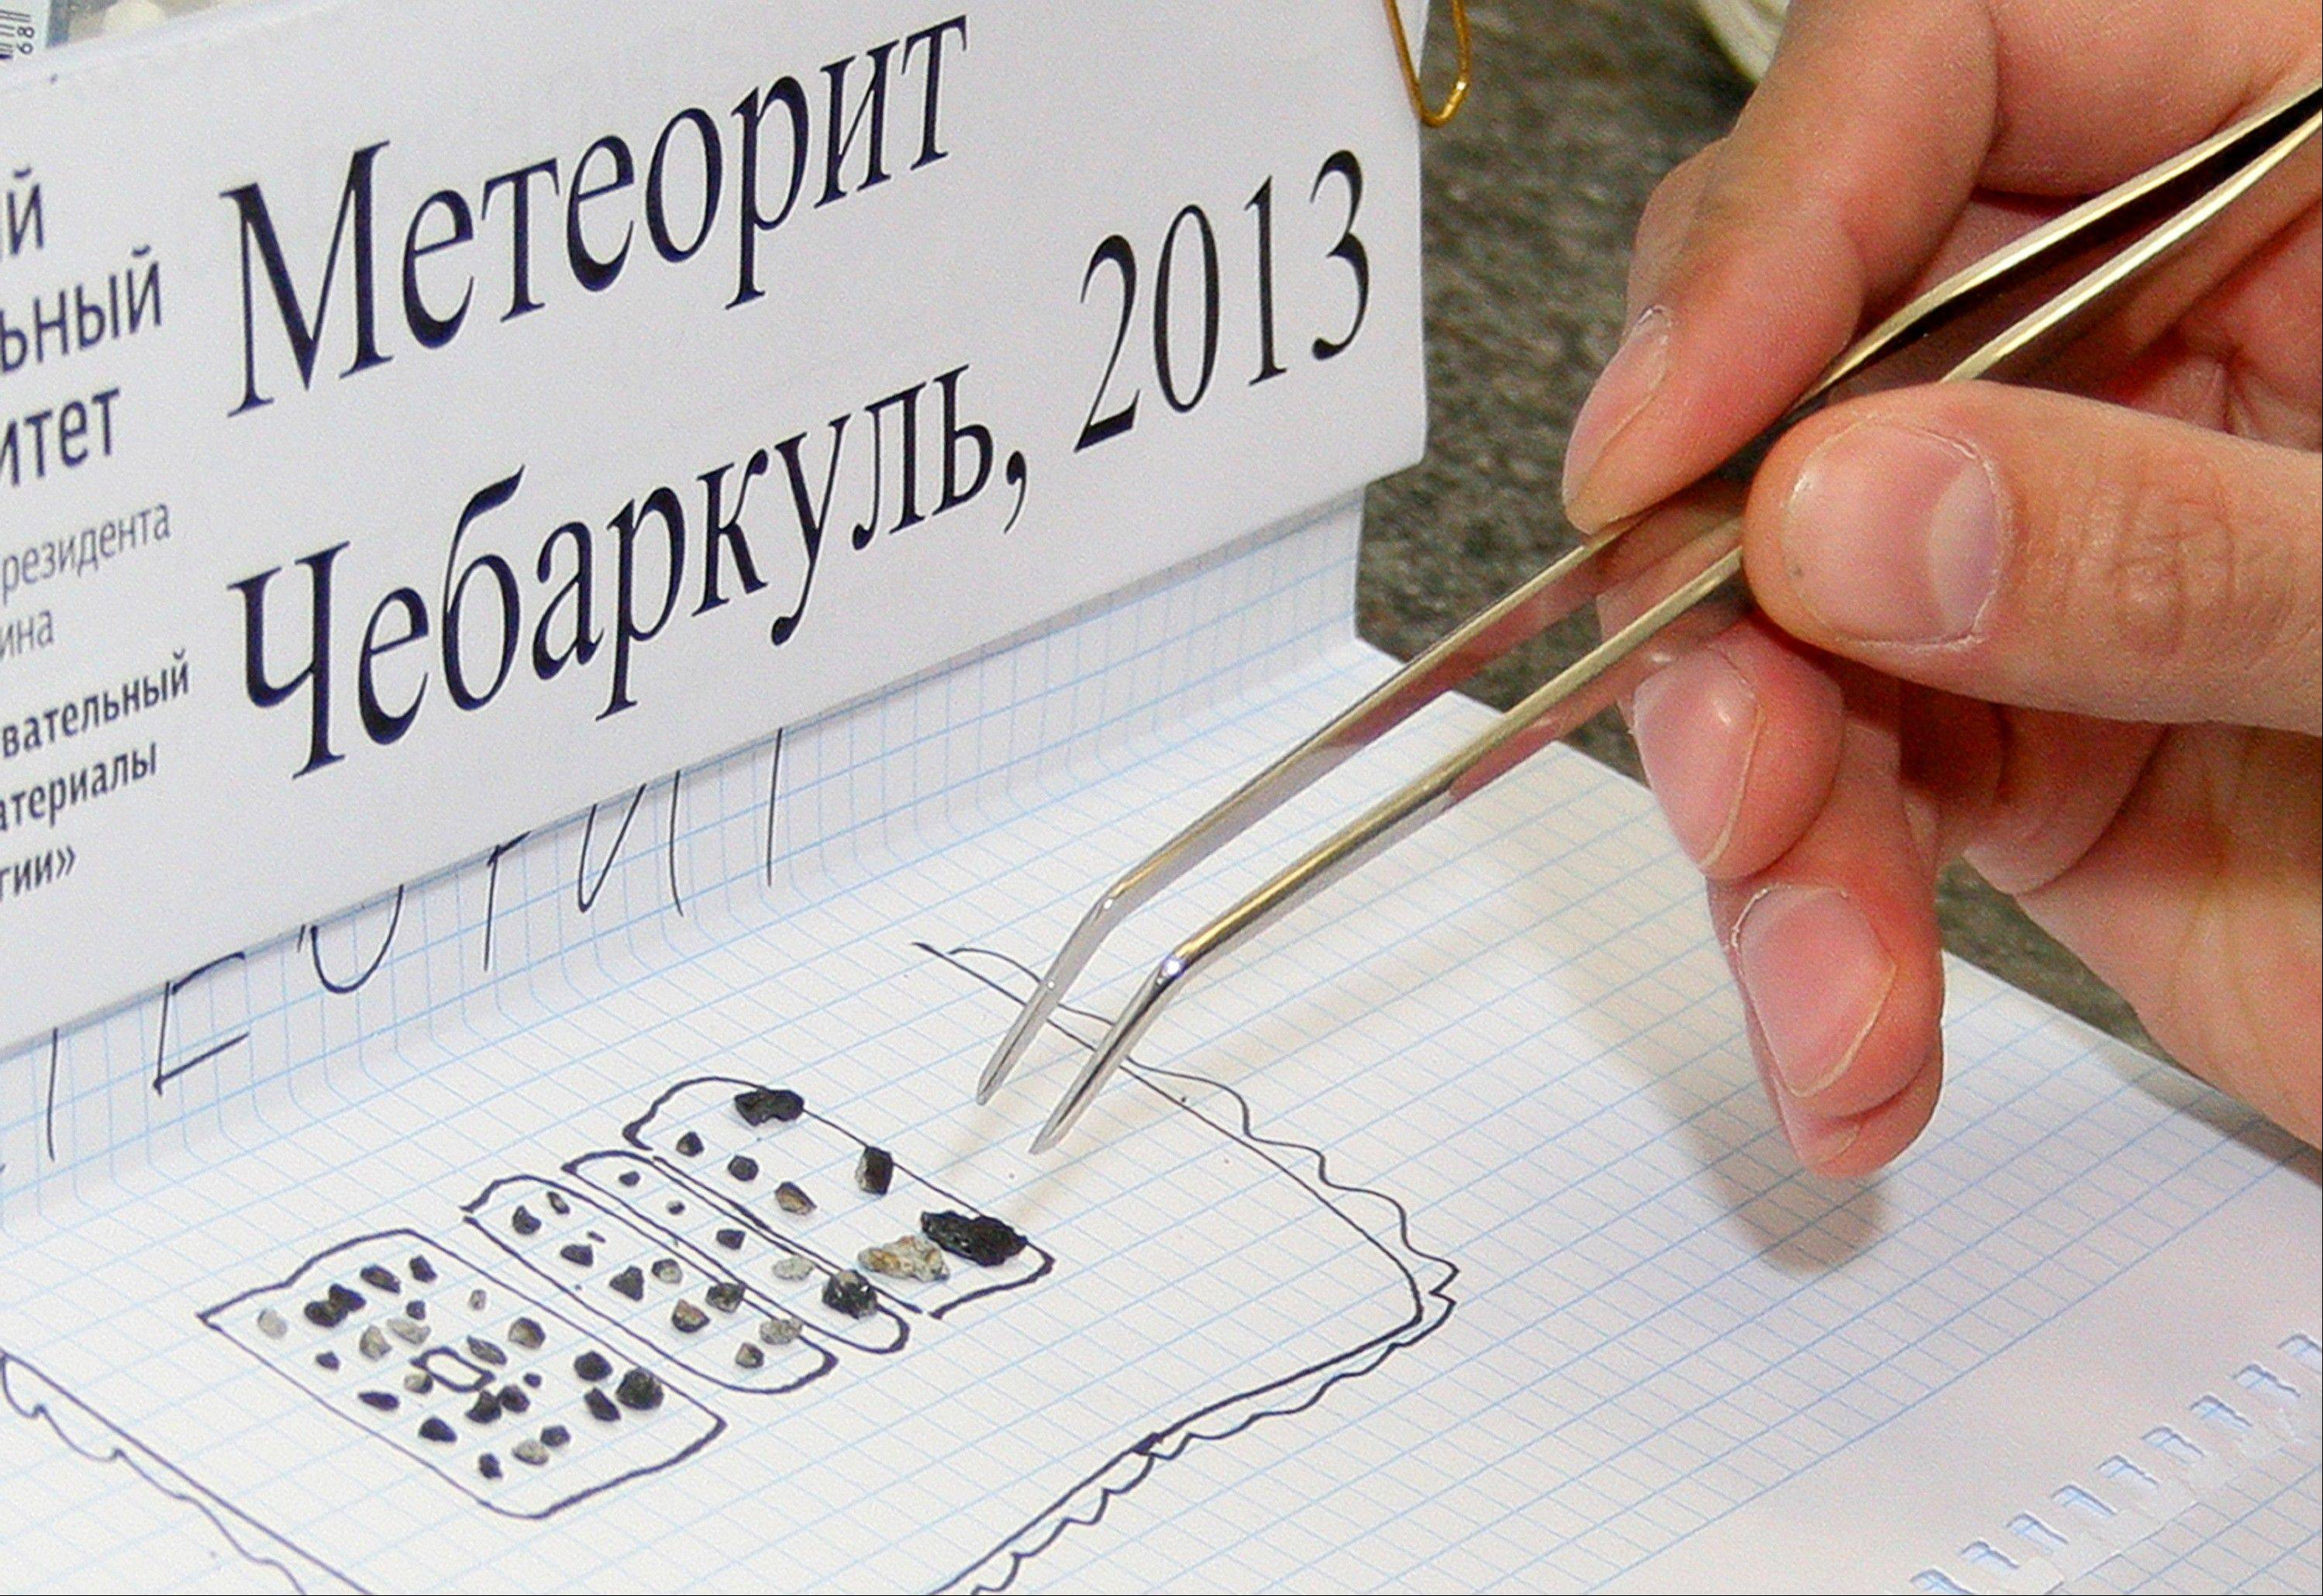 ASSOCIATED PRESSA researcher examines pieces of a meteorite in a laboratory in Yekaterinburg on Monday. Researchers have determined that the small stone-like pieces found near Lake Cherbarkul in the Chelyabinsk region are pieces of the meteorite that exploded over the region Feb. 15.